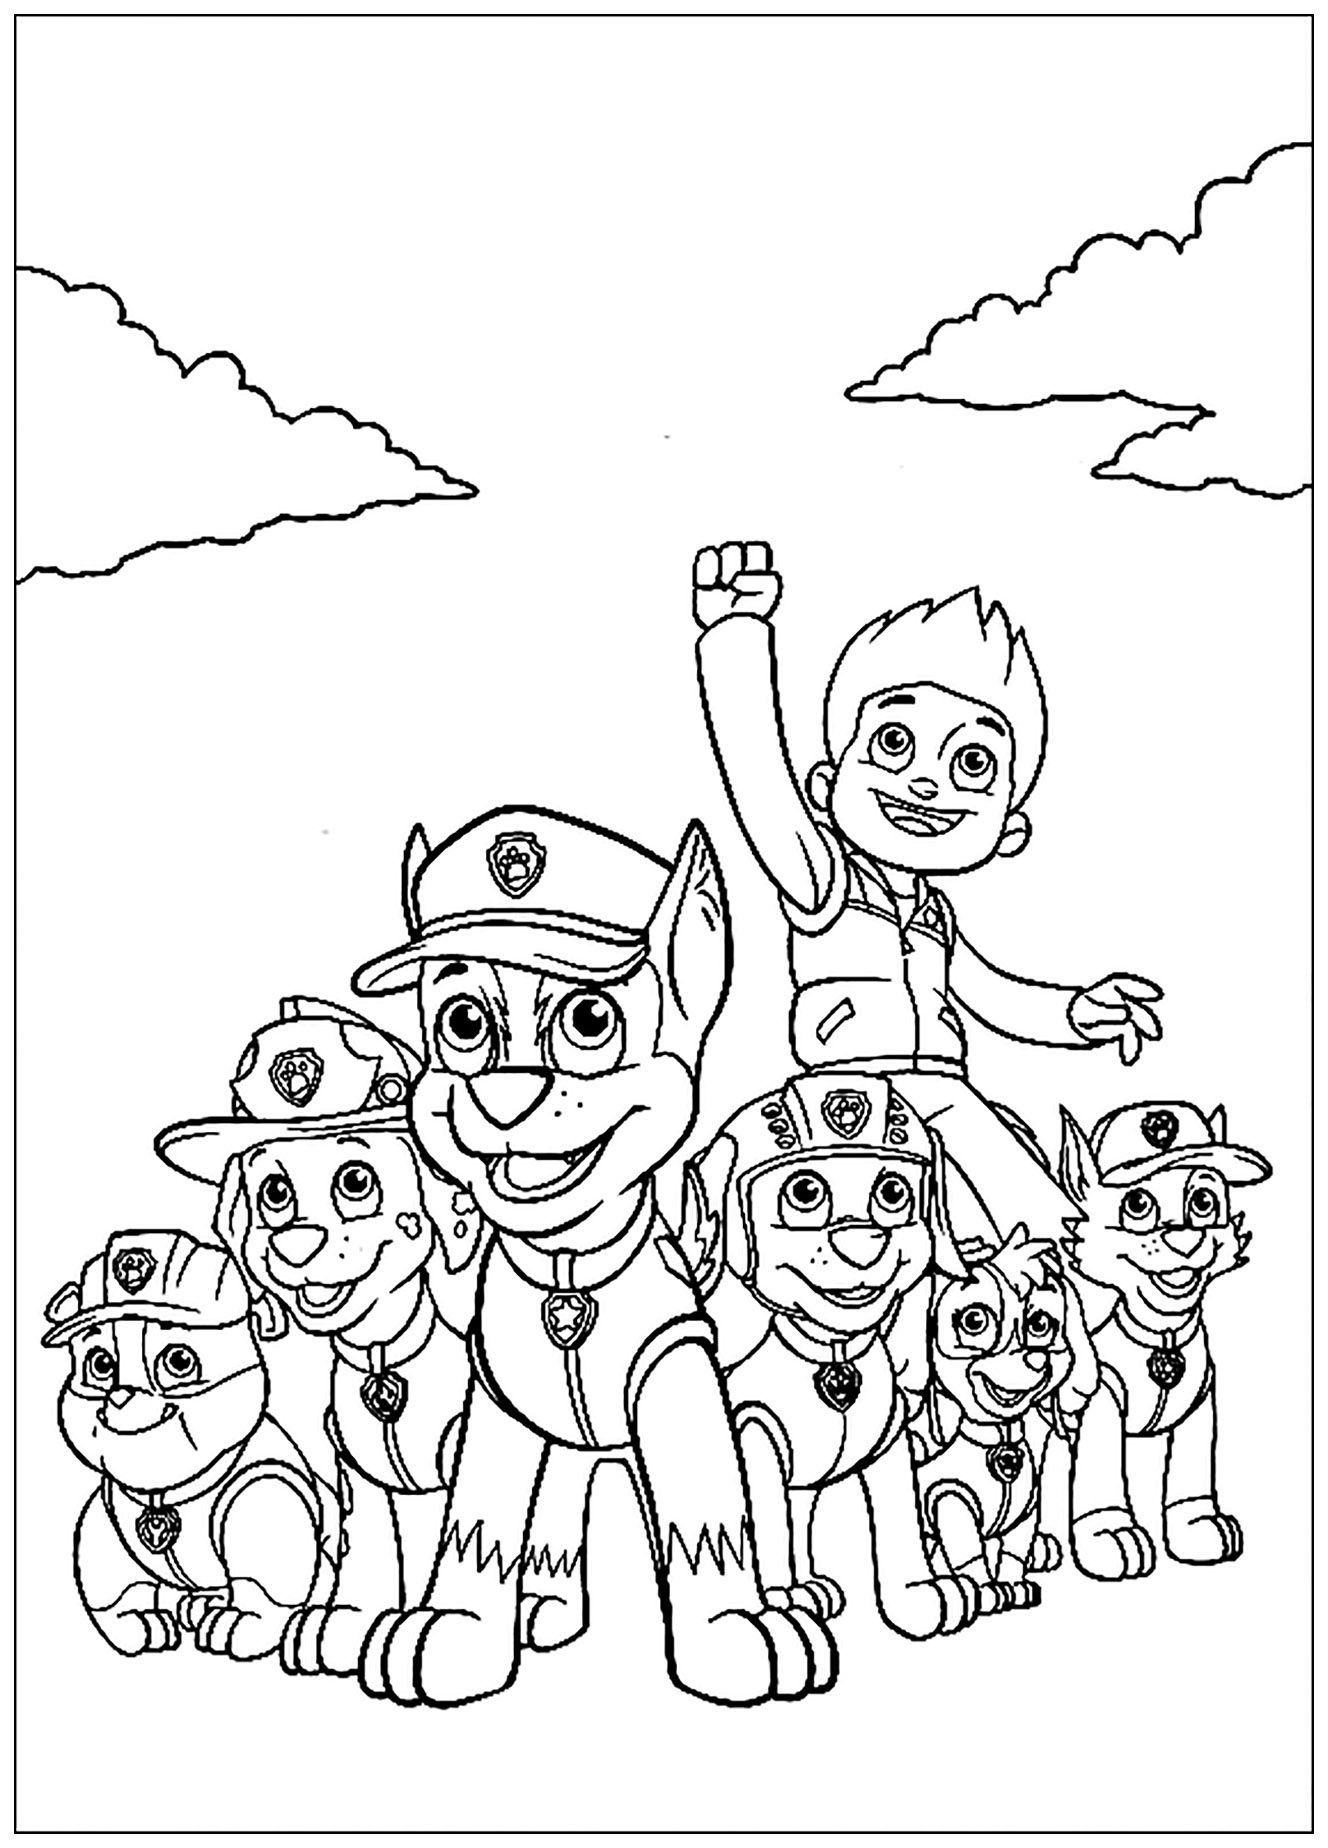 mission paw coloring pages coloriage pat patrouille mission recyclage dessin coloring pages mission paw